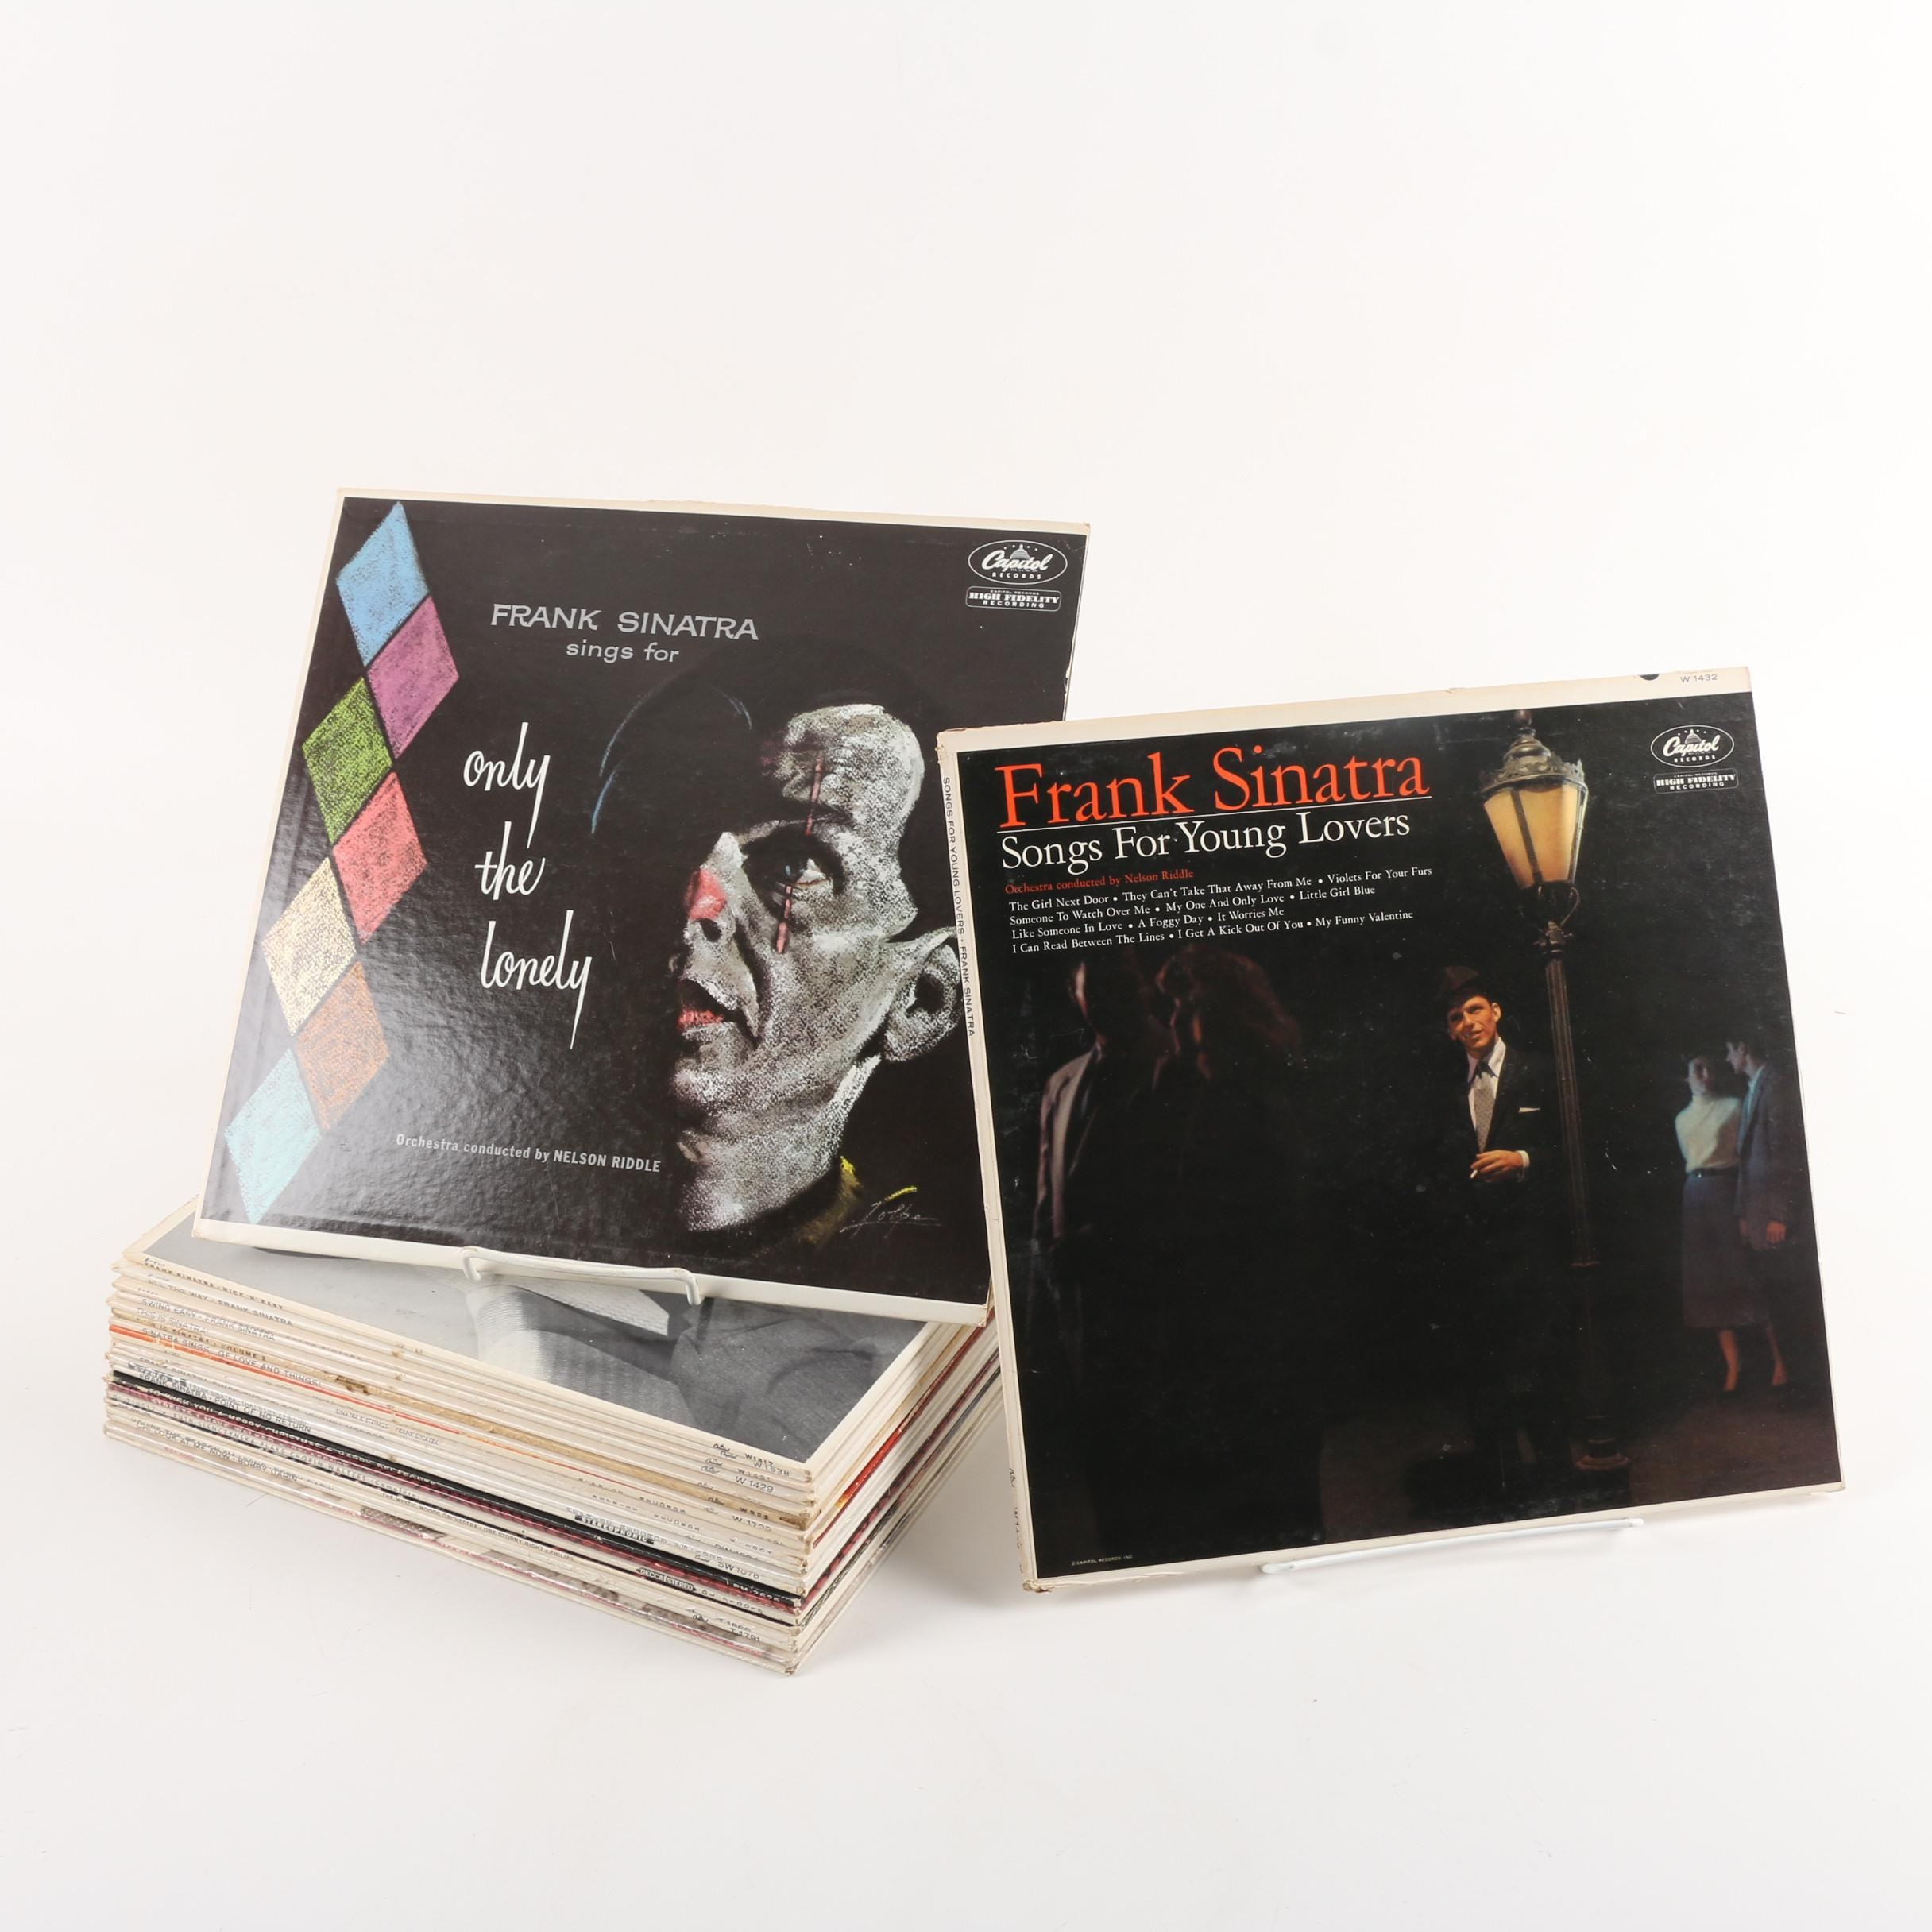 Frank Sinatra, Harry Belafonte and Other Easy Listening LP Records